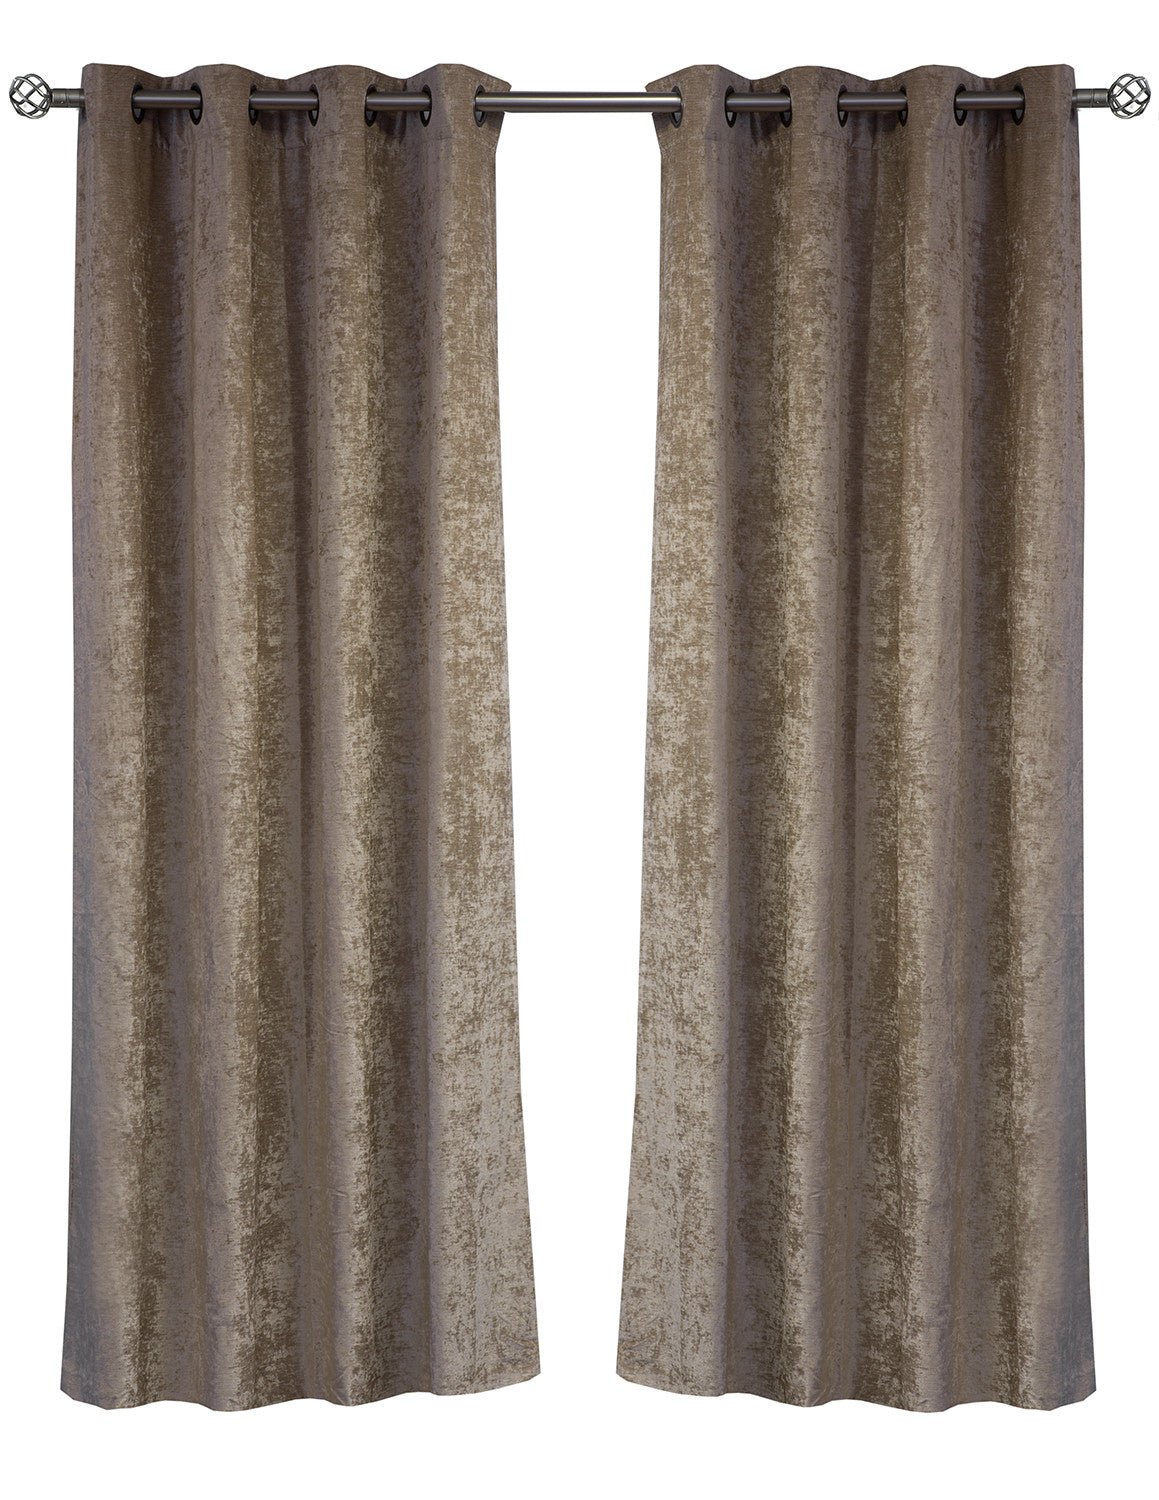 LITEOUT - LUXE CHENILLE LINED CURTAIN PANEL